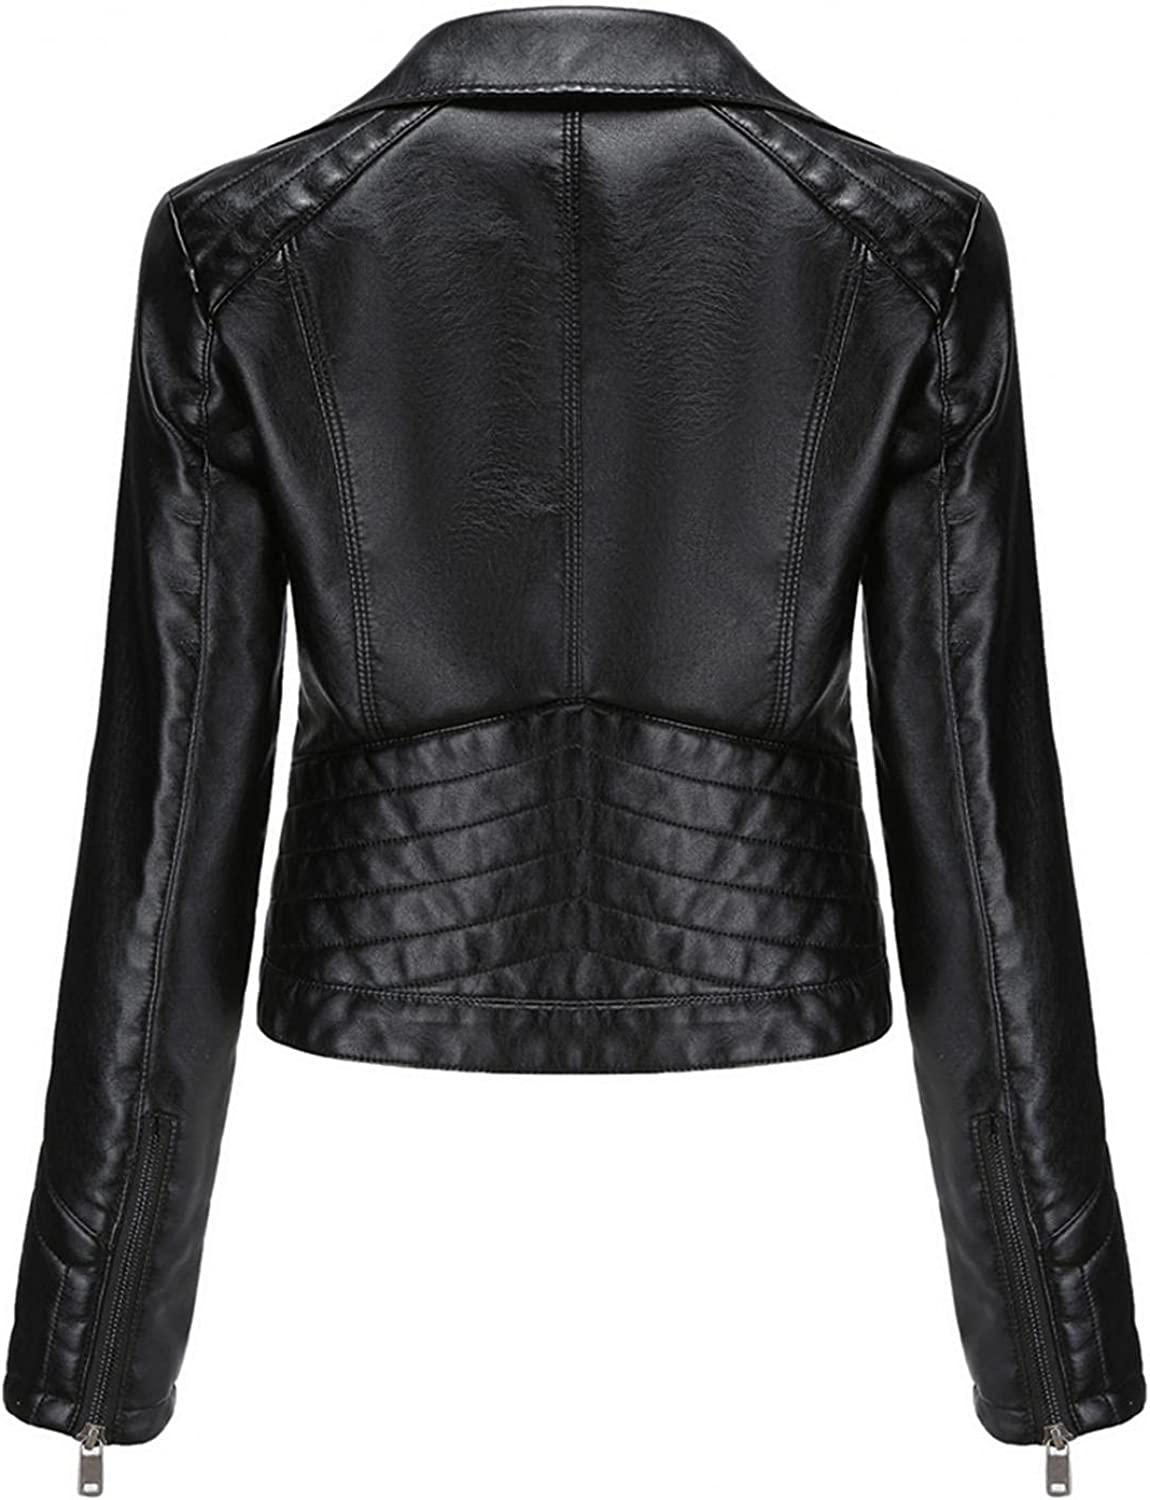 Max 84% OFF Changeshopping Womens Faux Leather Coat Winter Lapel Jacke Motor Mail order cheap